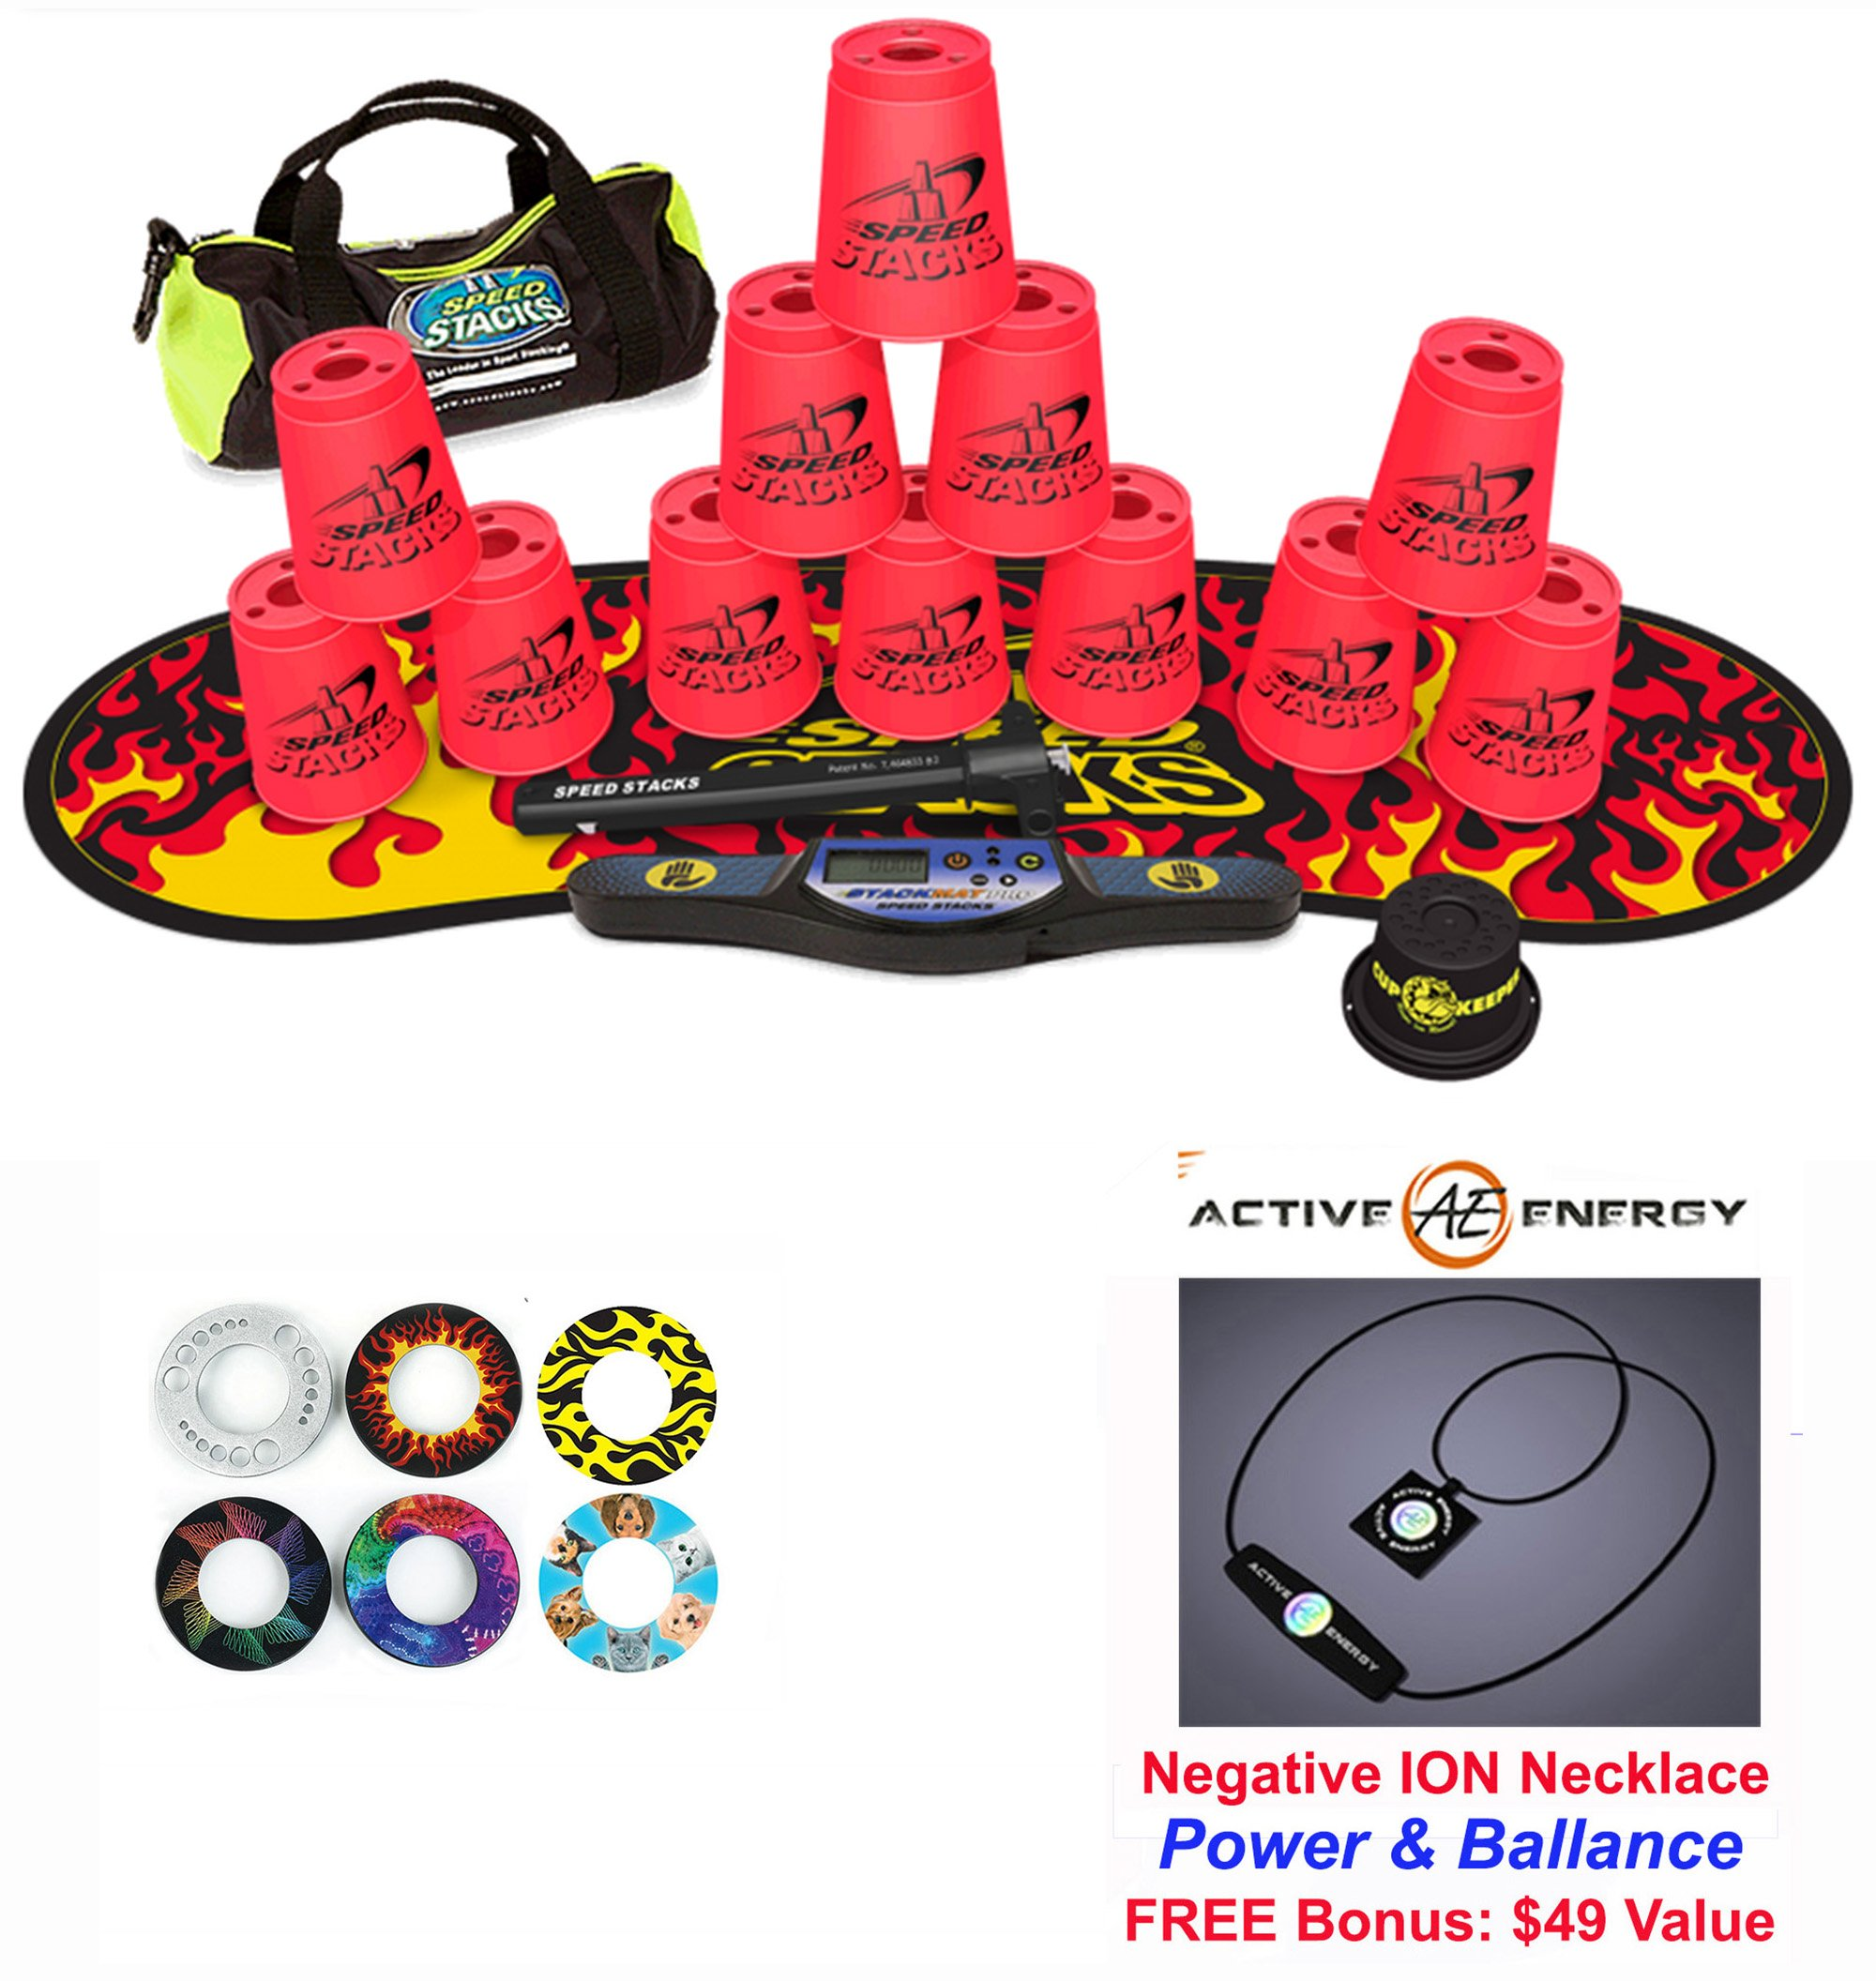 Speed Stacks Custom Combo Set - The Works: 12 PINK 4'' Cups, Cup Keeper, Quick Release Stem, Pro Timer, Gen 3 Premium Black Flame Mat, 6 Snap Tops, Gear Bag + FREE: Active Energy Power Necklace $49